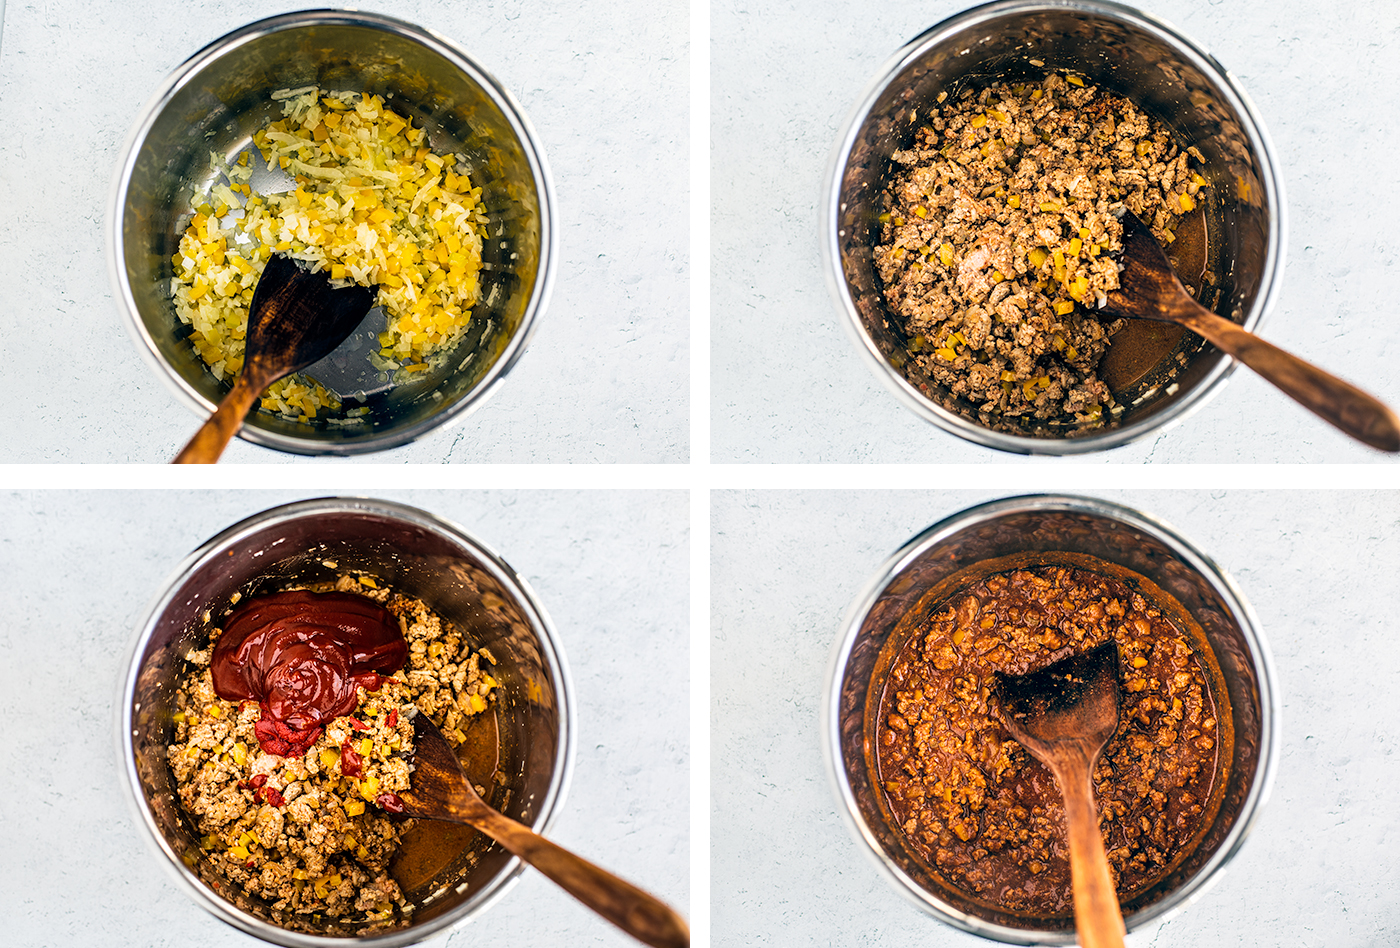 Process shots of cooking vegetables and ground turkey in Instant Pot.